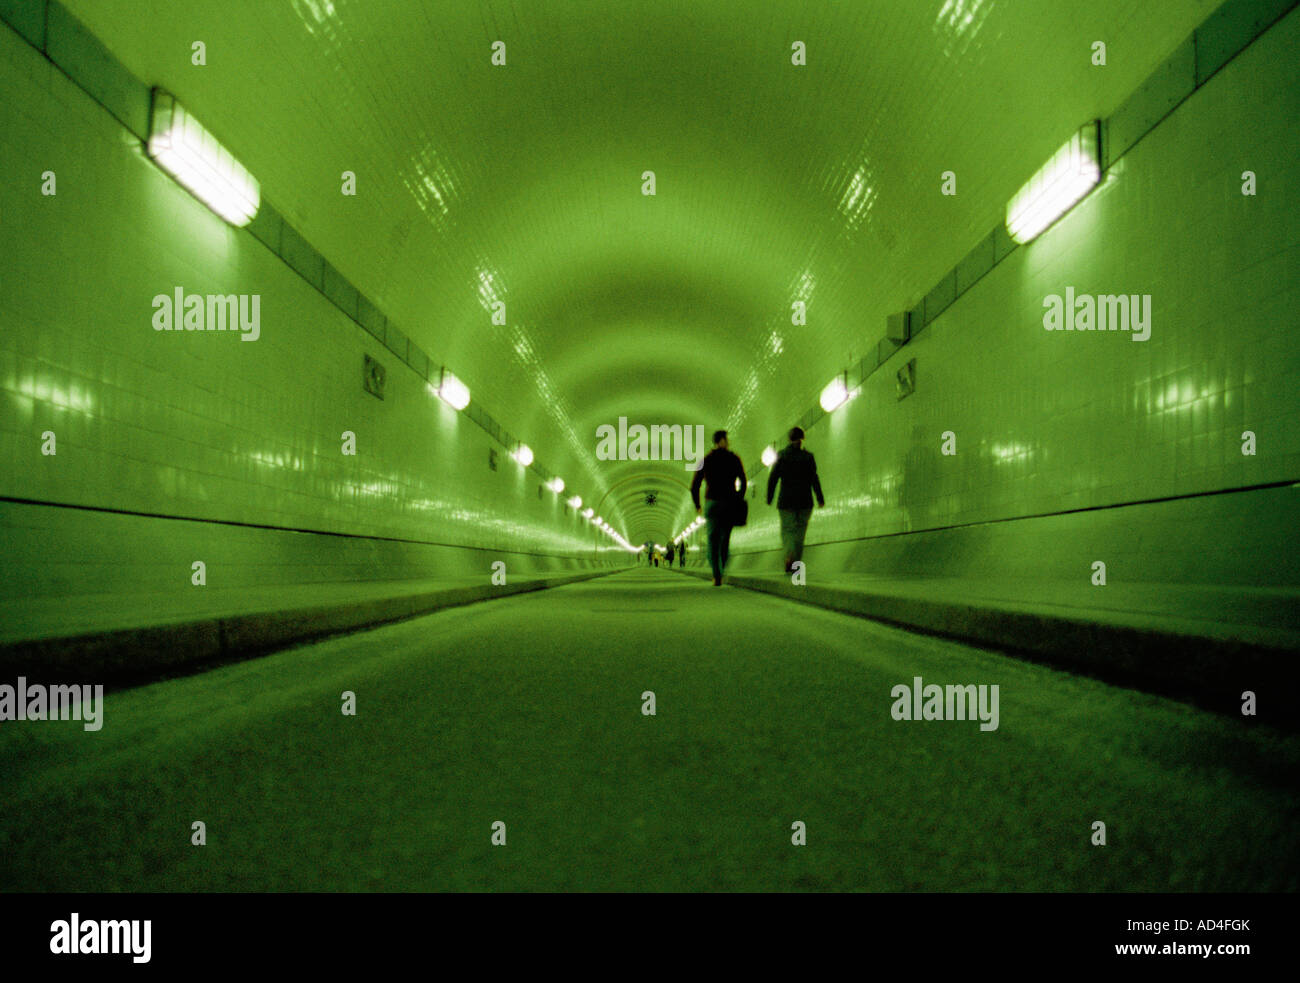 An illuminated tunnel - Stock Image